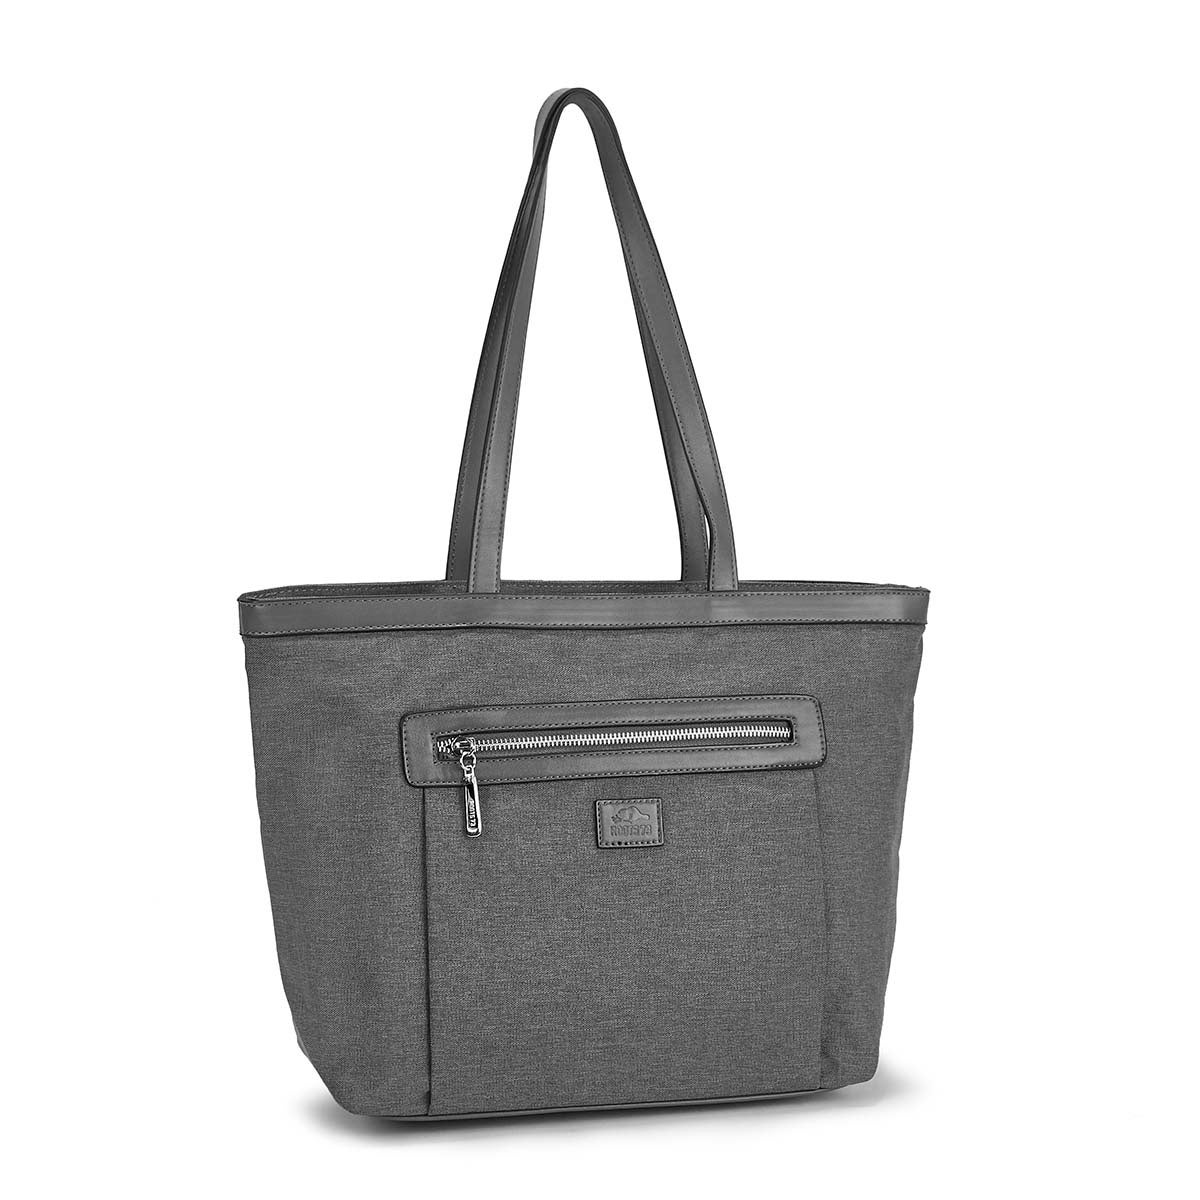 Women's R5119 Roots73 grey small tote bag